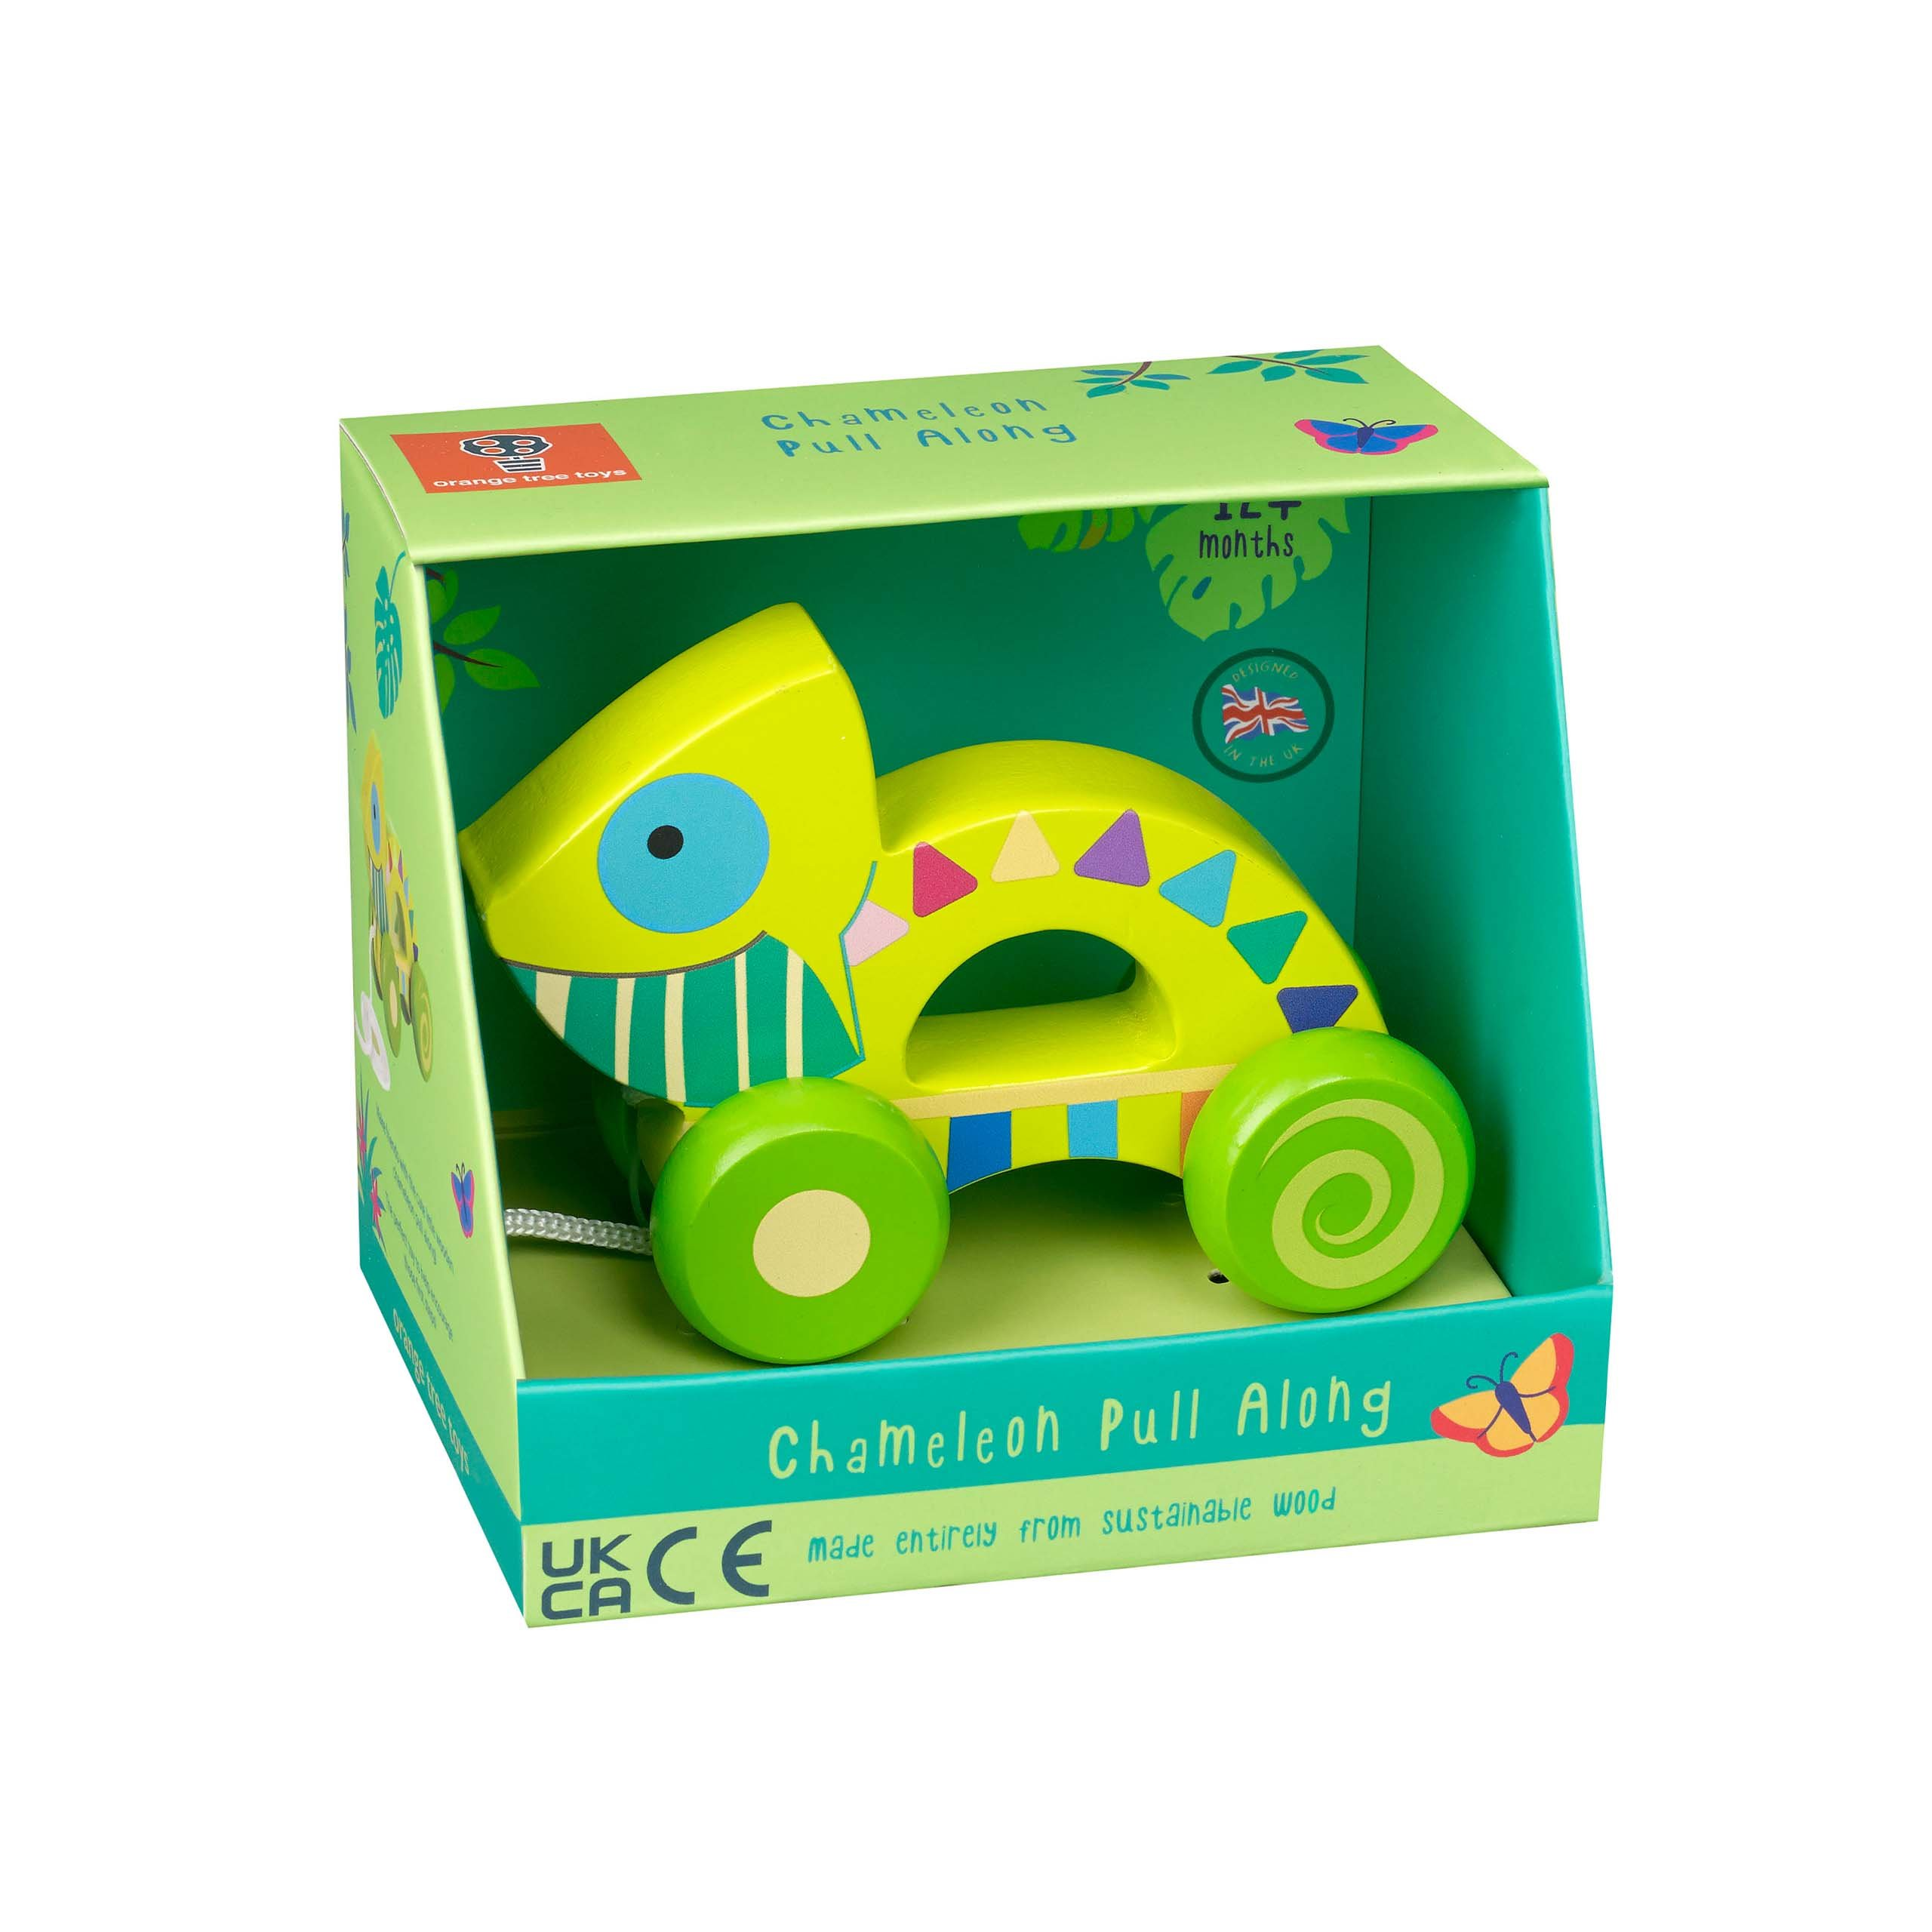 Chameleon Pull Along Toy boxed